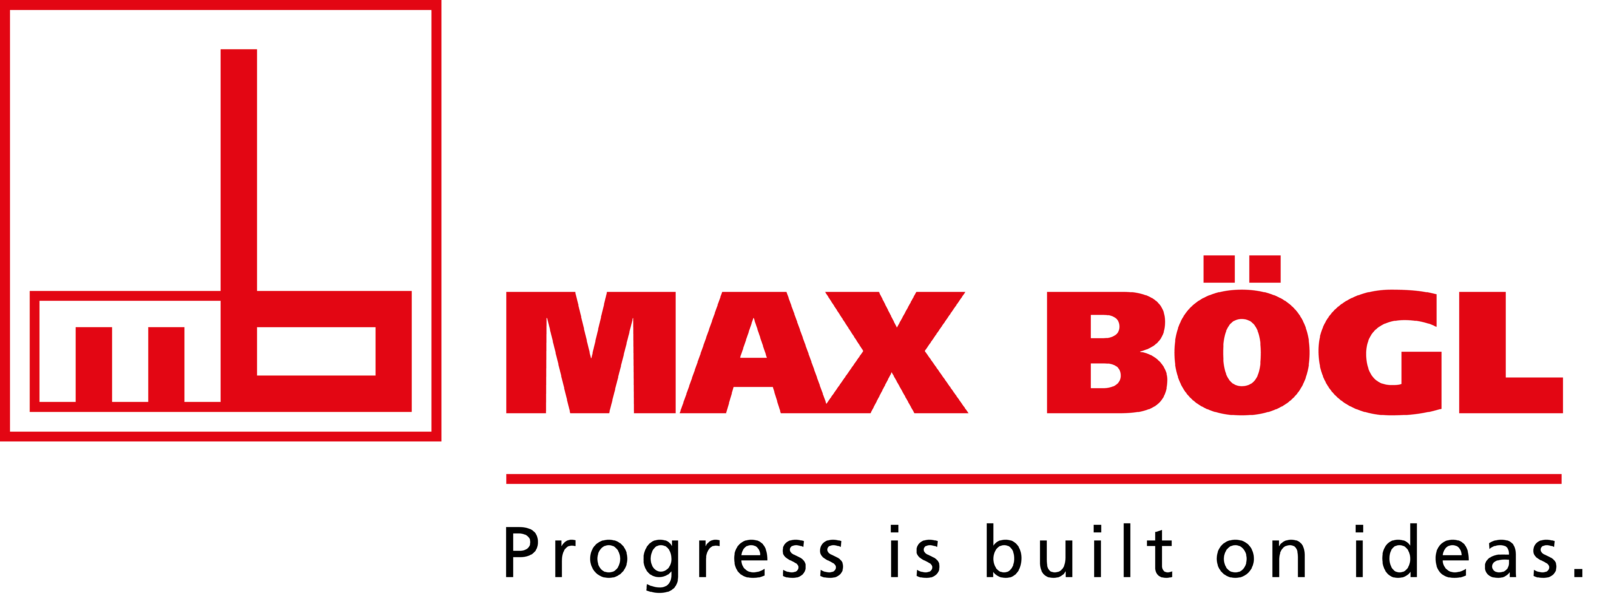 Max Boegl logo with claim